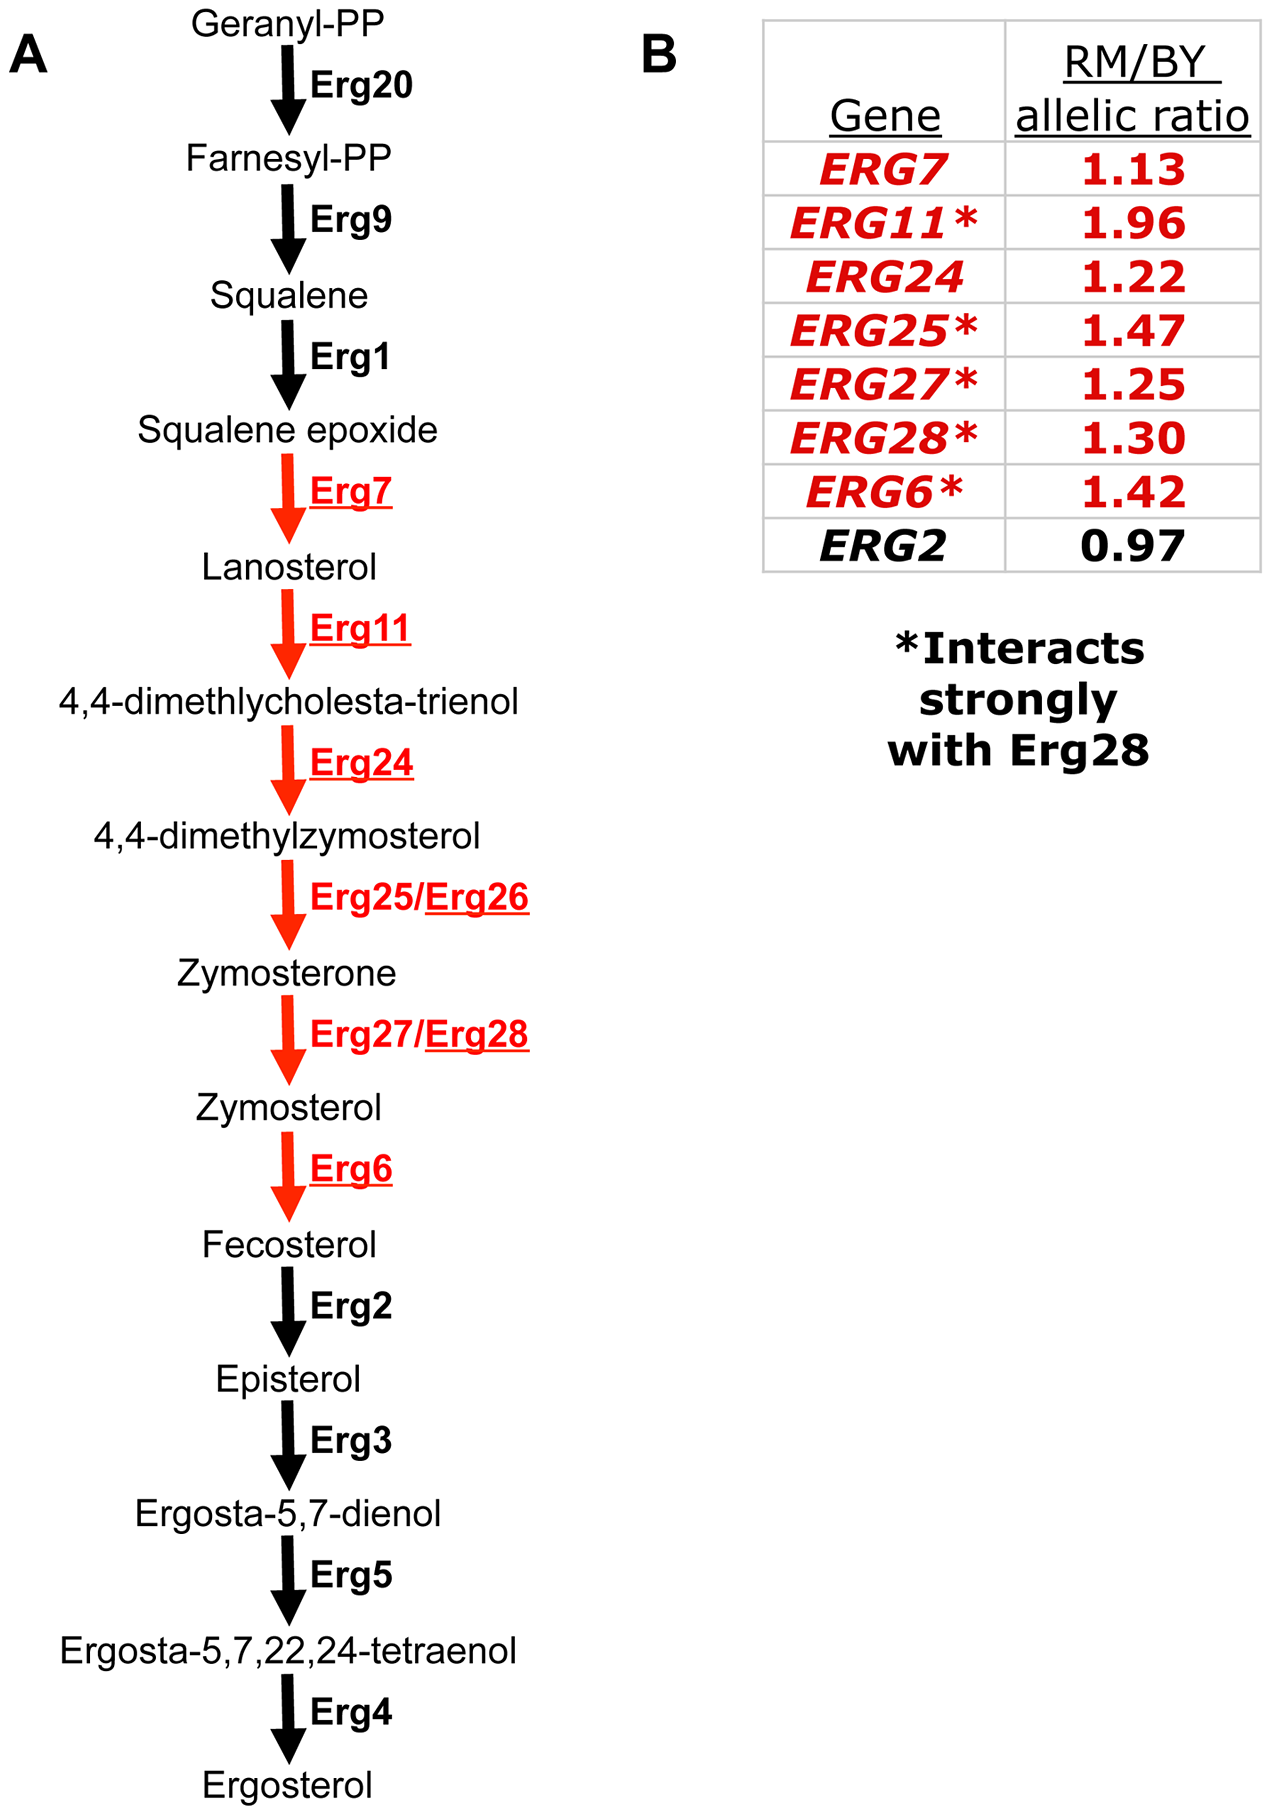 A polygenic gene expression adaptation in the ergosterol biosynthesis (ERG) pathway.